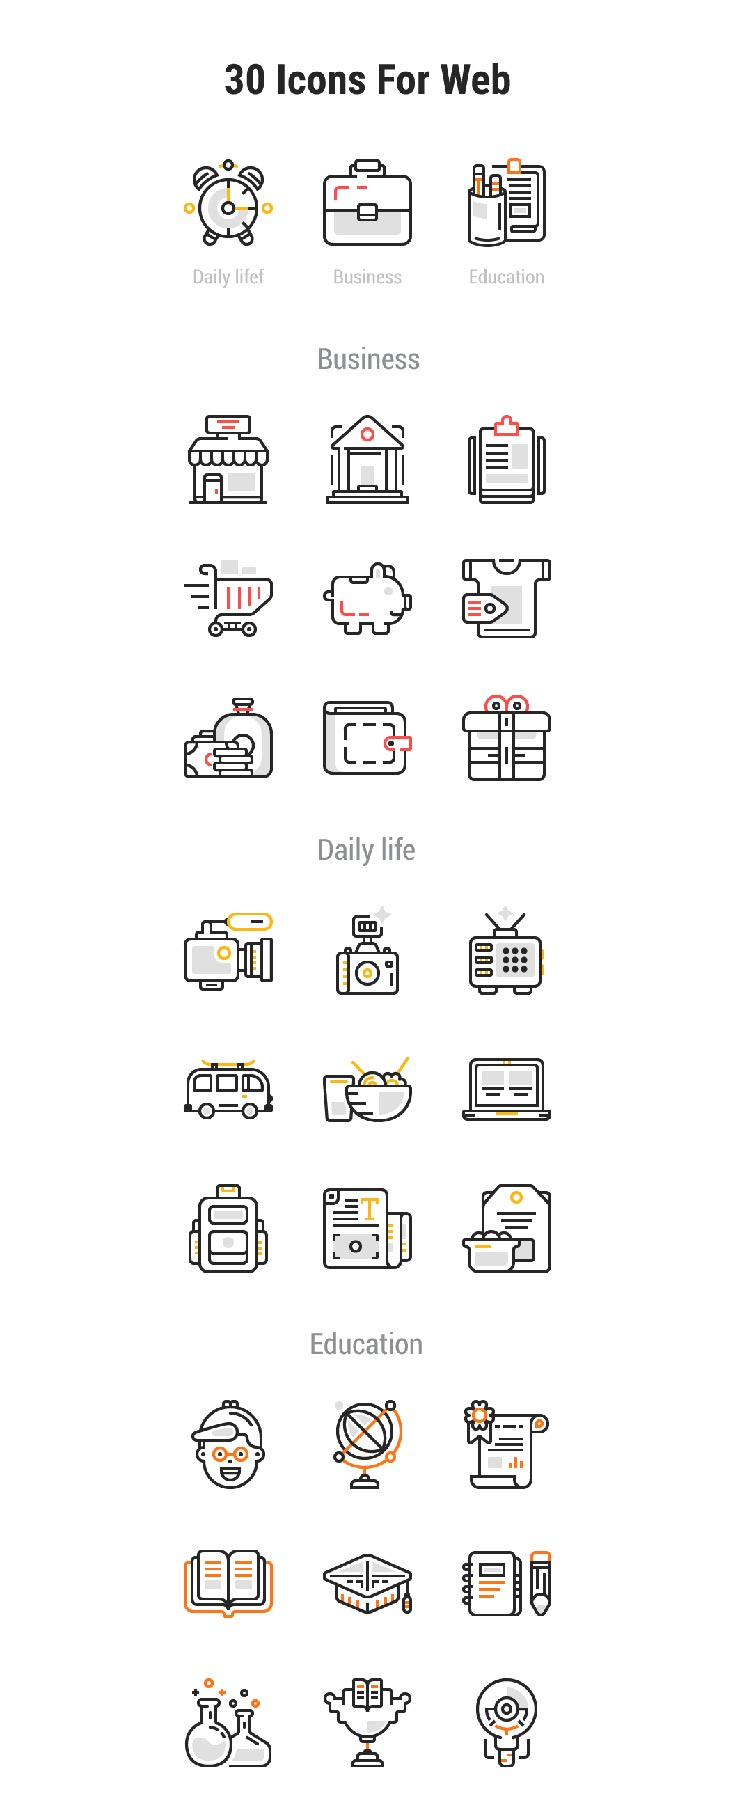 30 Free Web Design Vector Line Icons which contains many different types of icons such as Business, Daily life, food, education and much more.